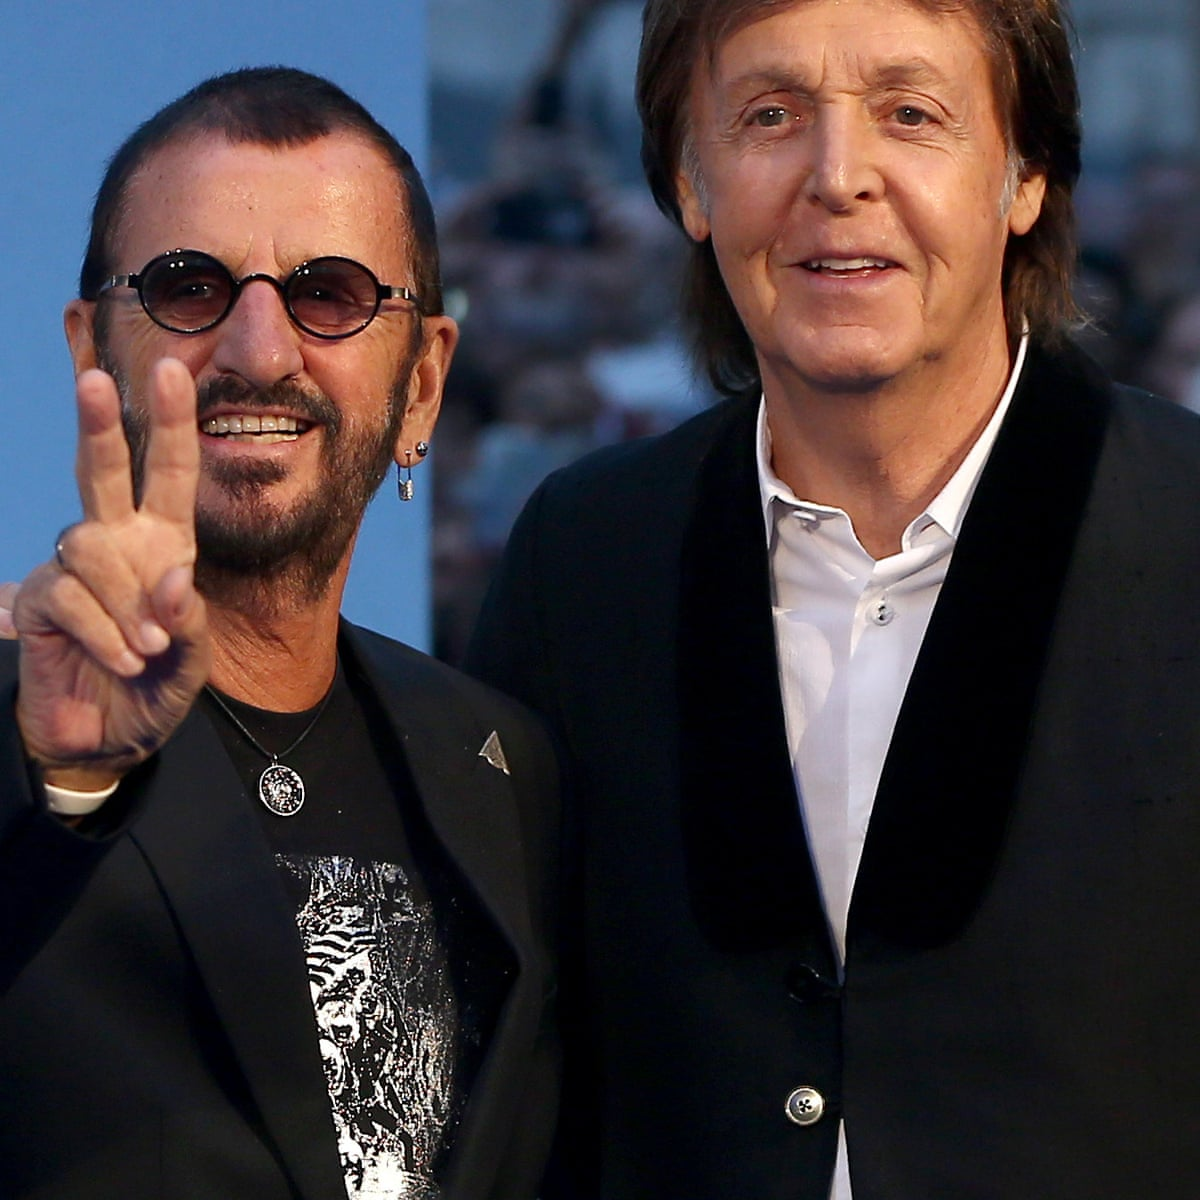 Paul Mccartney And Ringo Starr Reunite To Record John Lennon Song The Beatles The Guardian